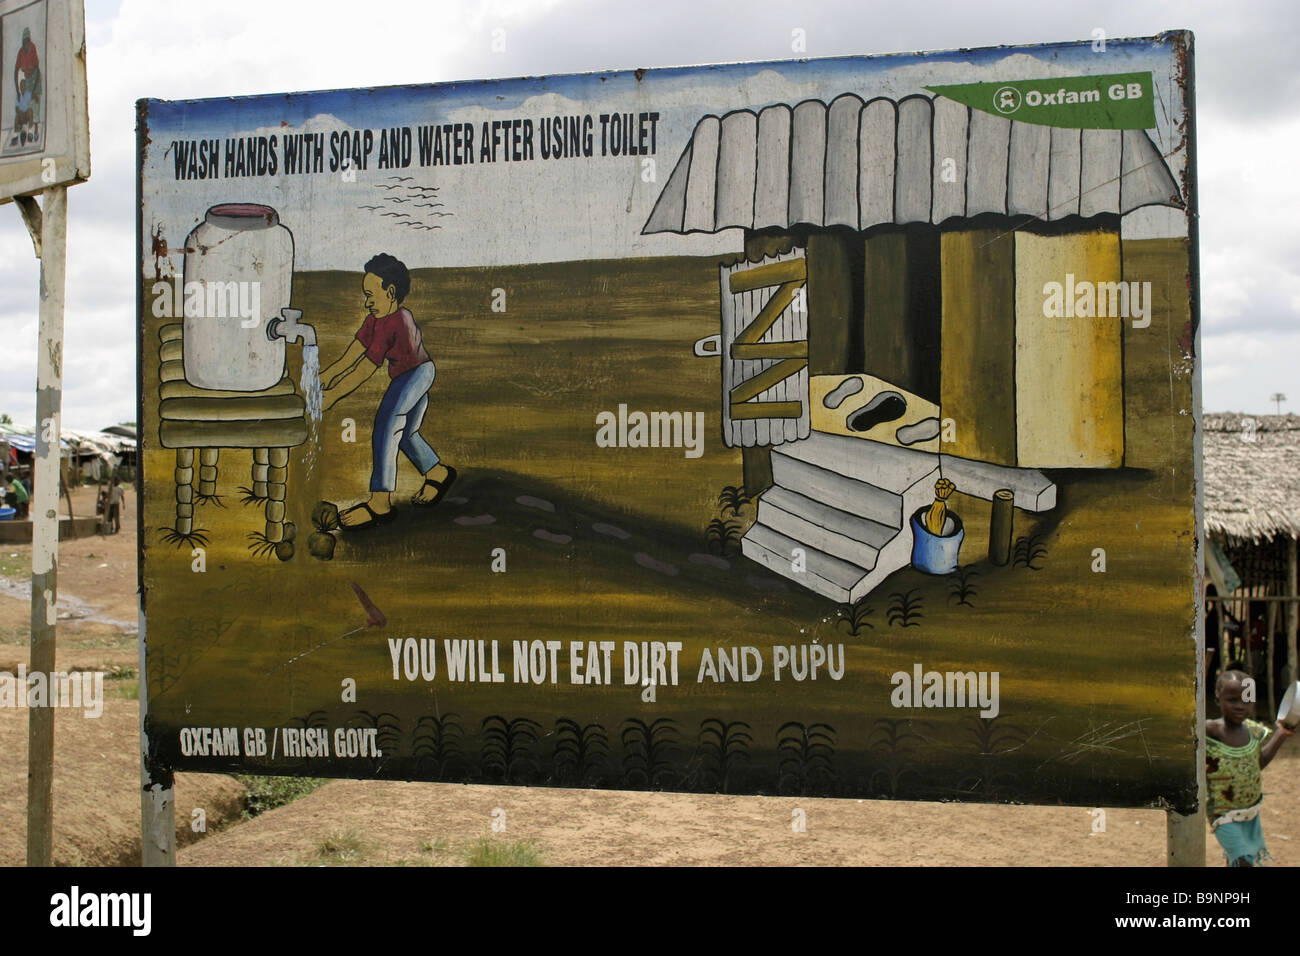 A health/hygiene education poster at a UN camp for refugees, Monrovia, Liberia - Stock Image